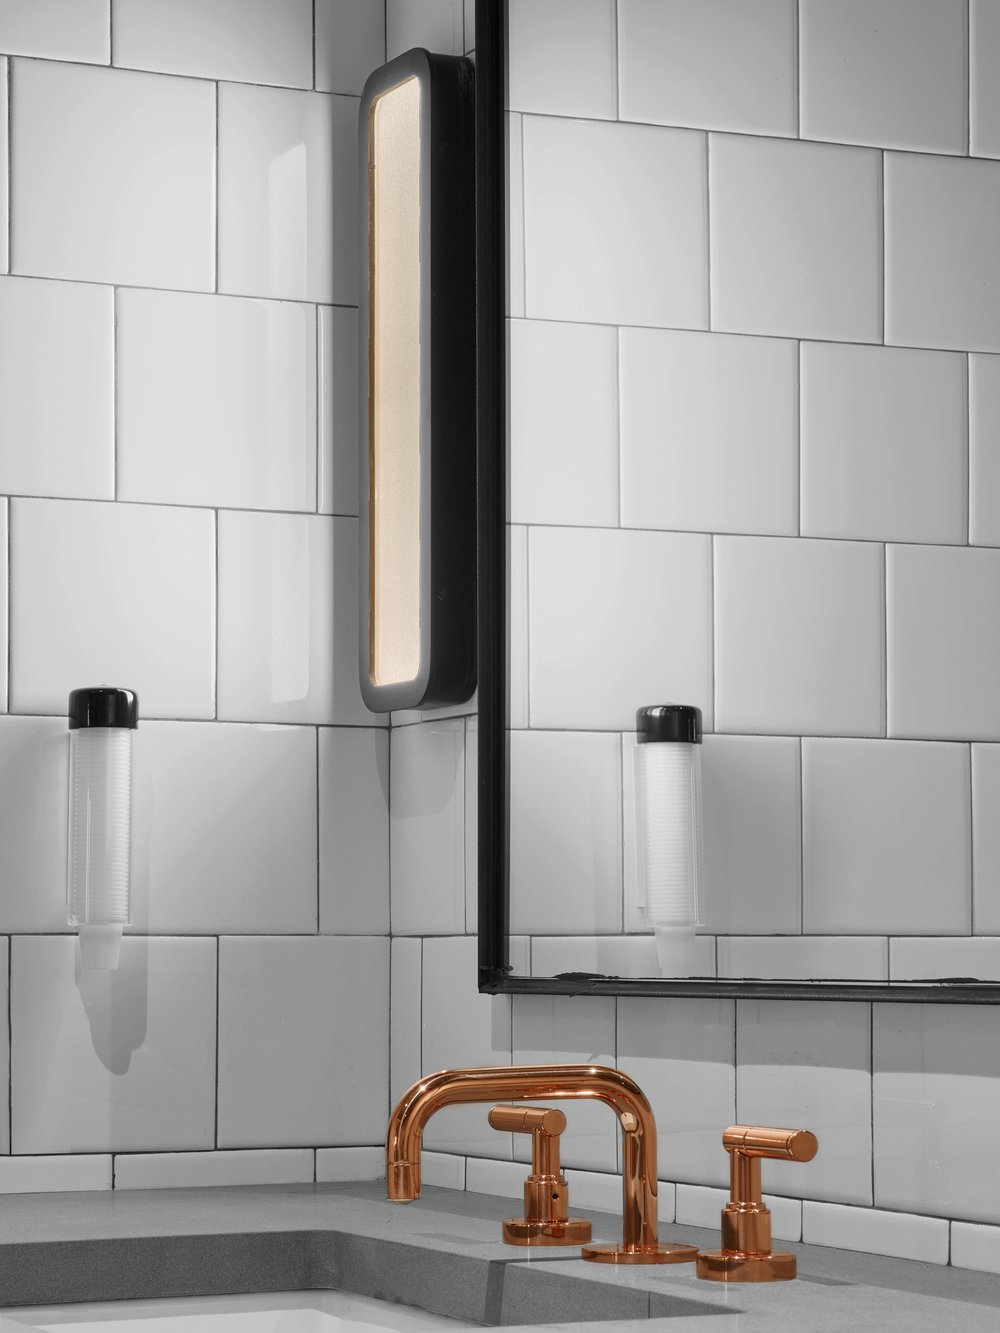 Industry City Athletic Club Locker Room Faucet and Light Detail